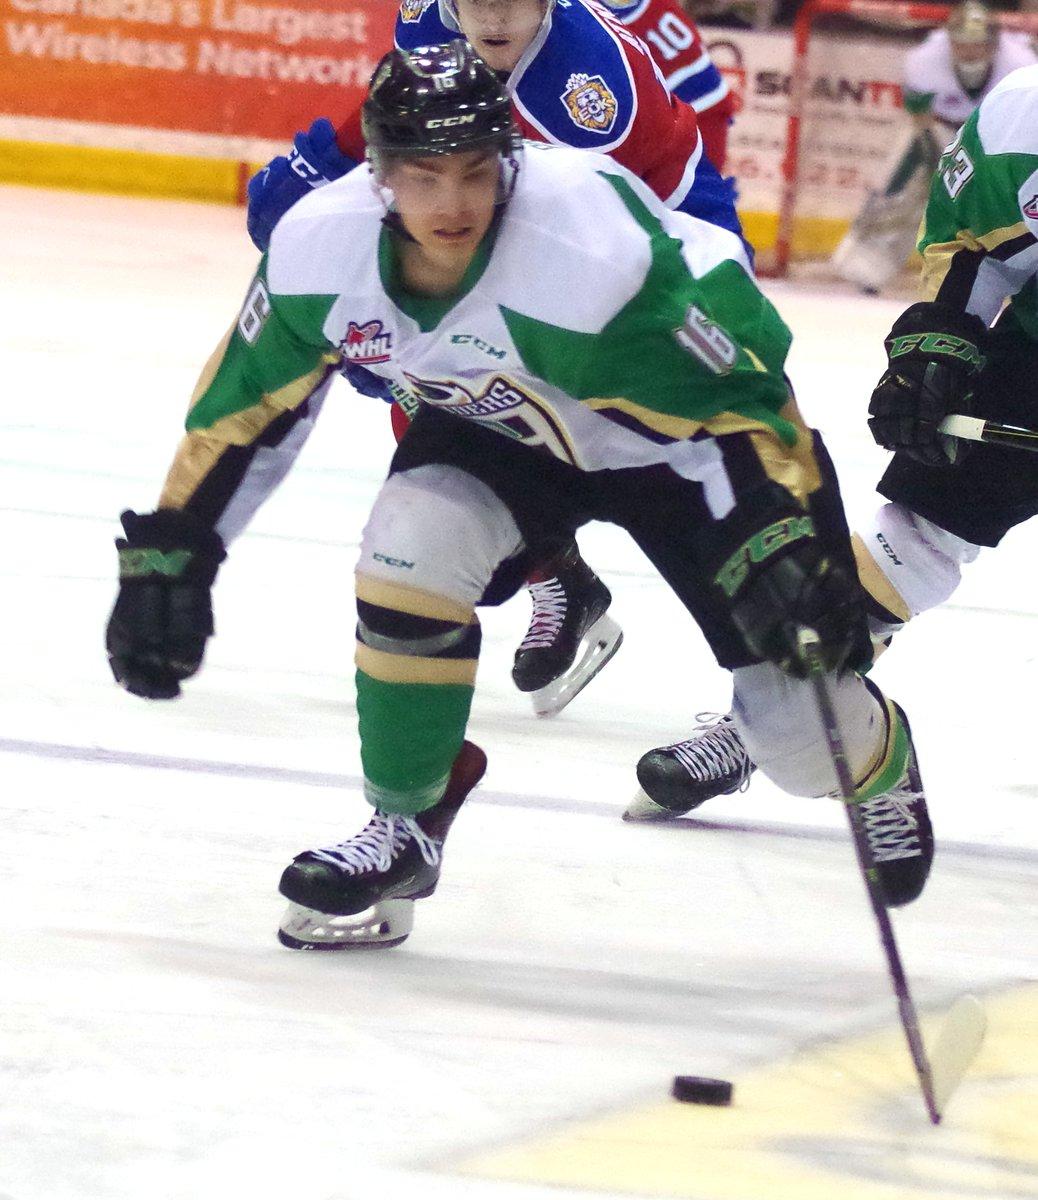 Rookie right-winger Jacob Brook had a pair of assists for the #PrinceAlbert #Raiders on Saturday. #WHLPlayoffs. #WHL. #CHL.